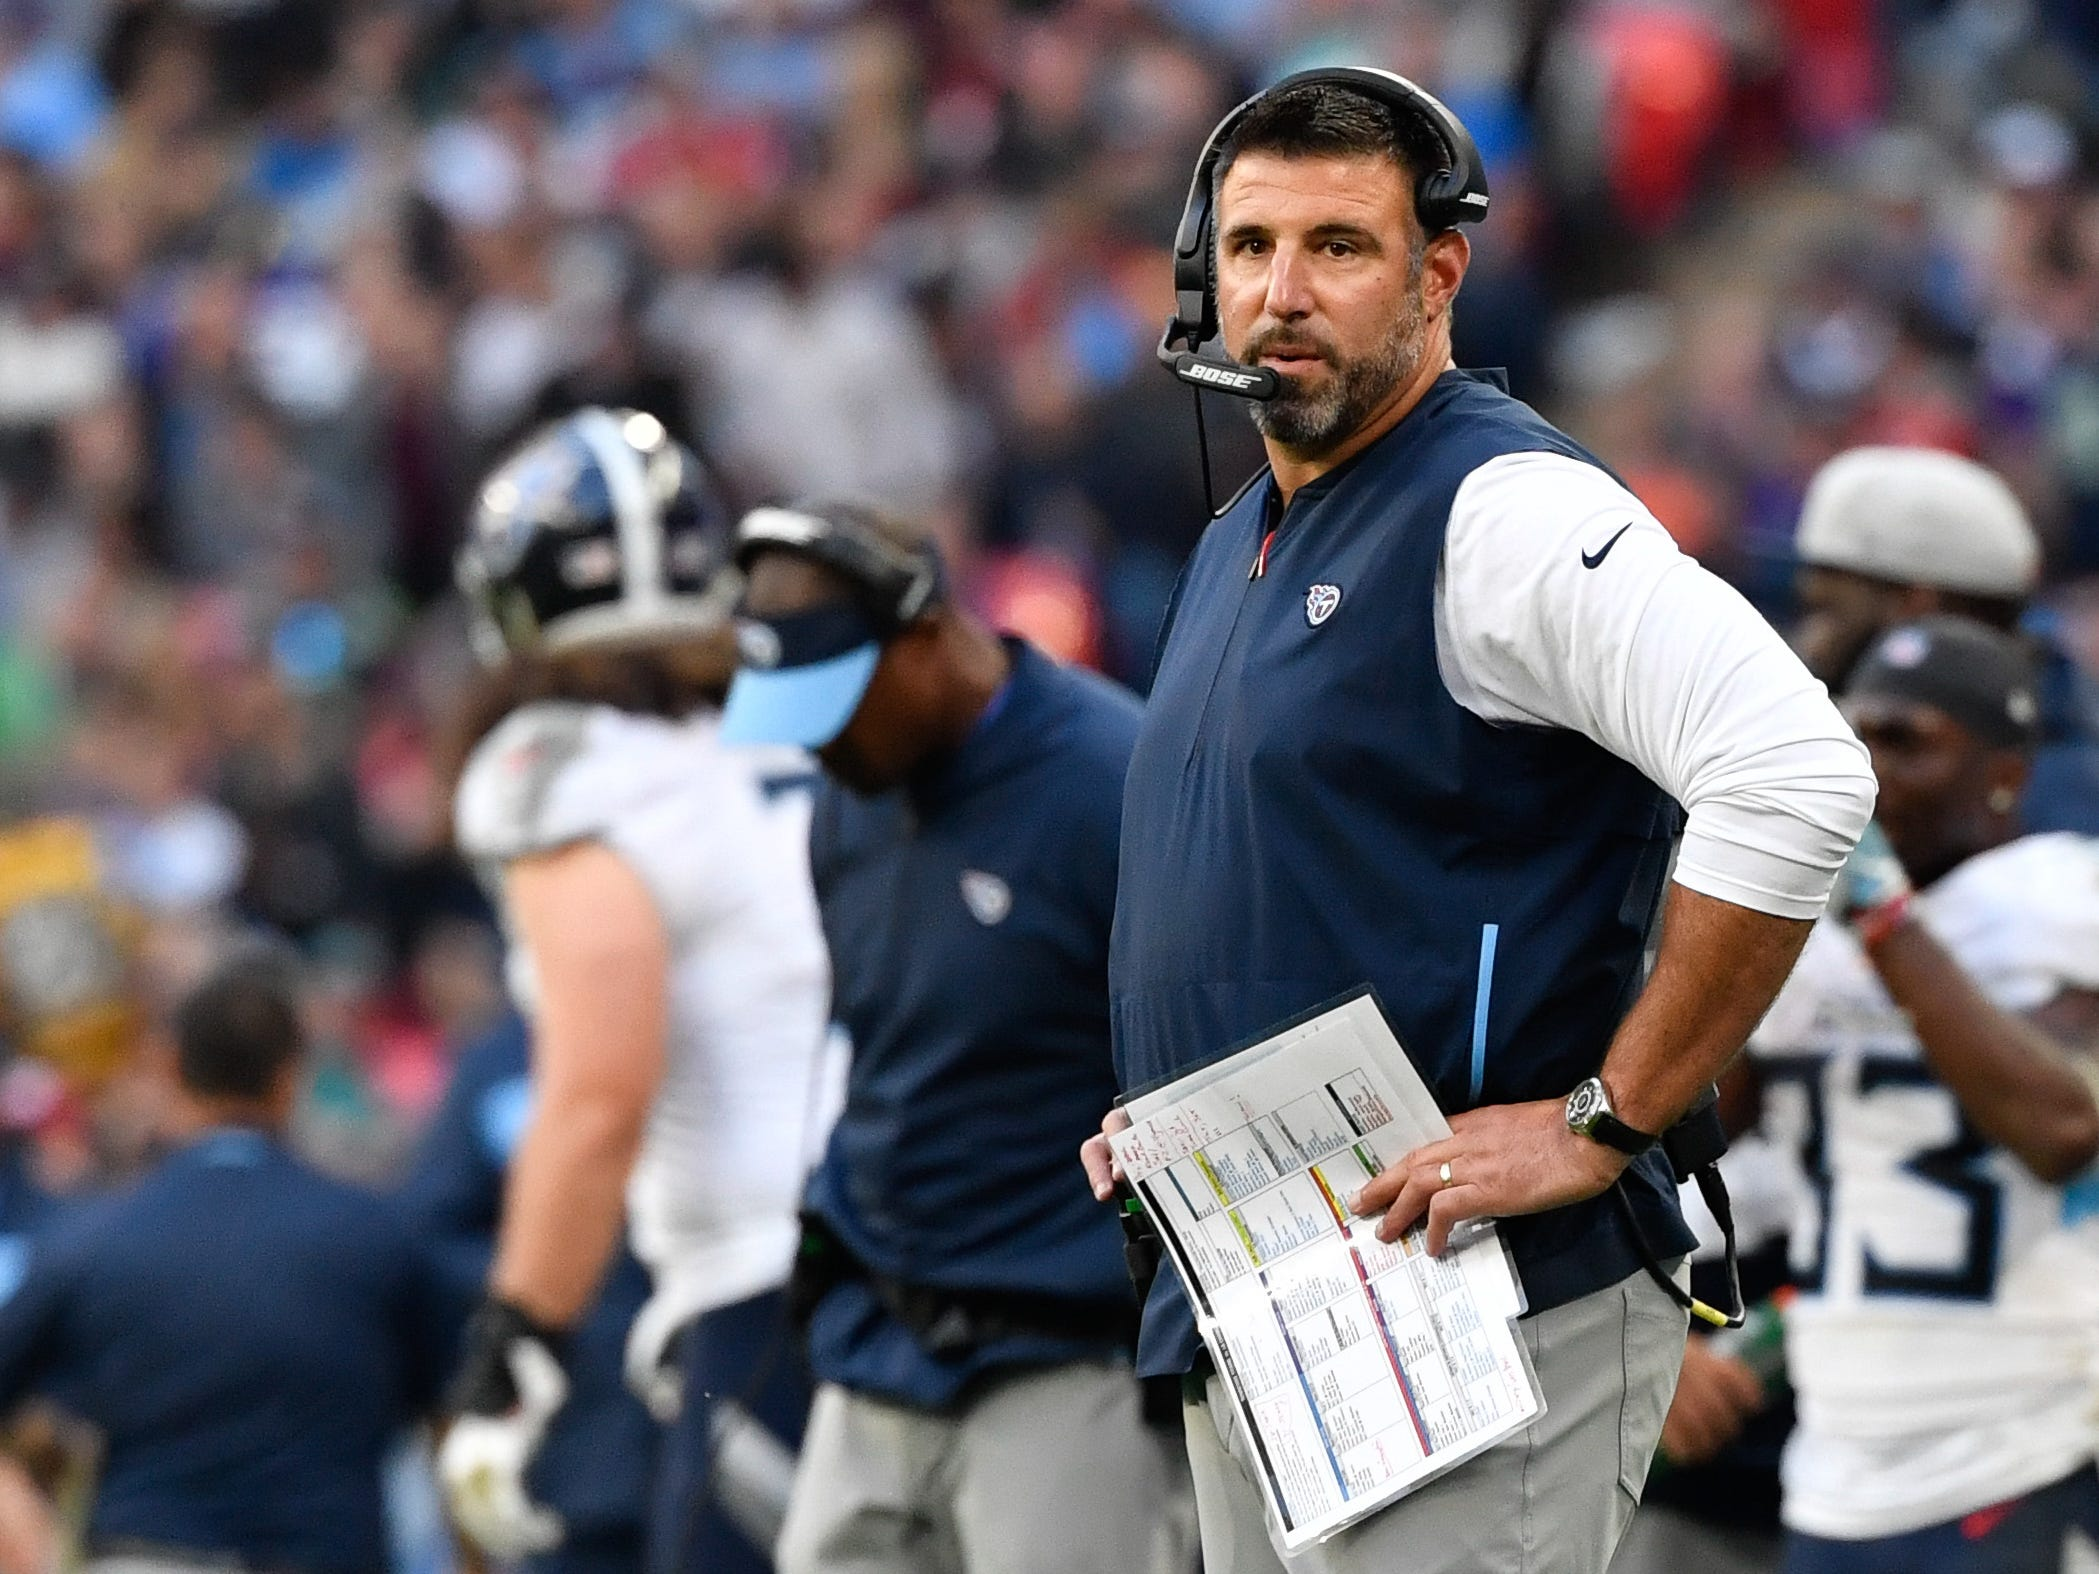 23. Titans (24): We applaud Mike Vrabel's guts as he determines what his team does well. Derrick Henry (3.3 ypc), Brian Orakpo (0 sacks) doing little well.